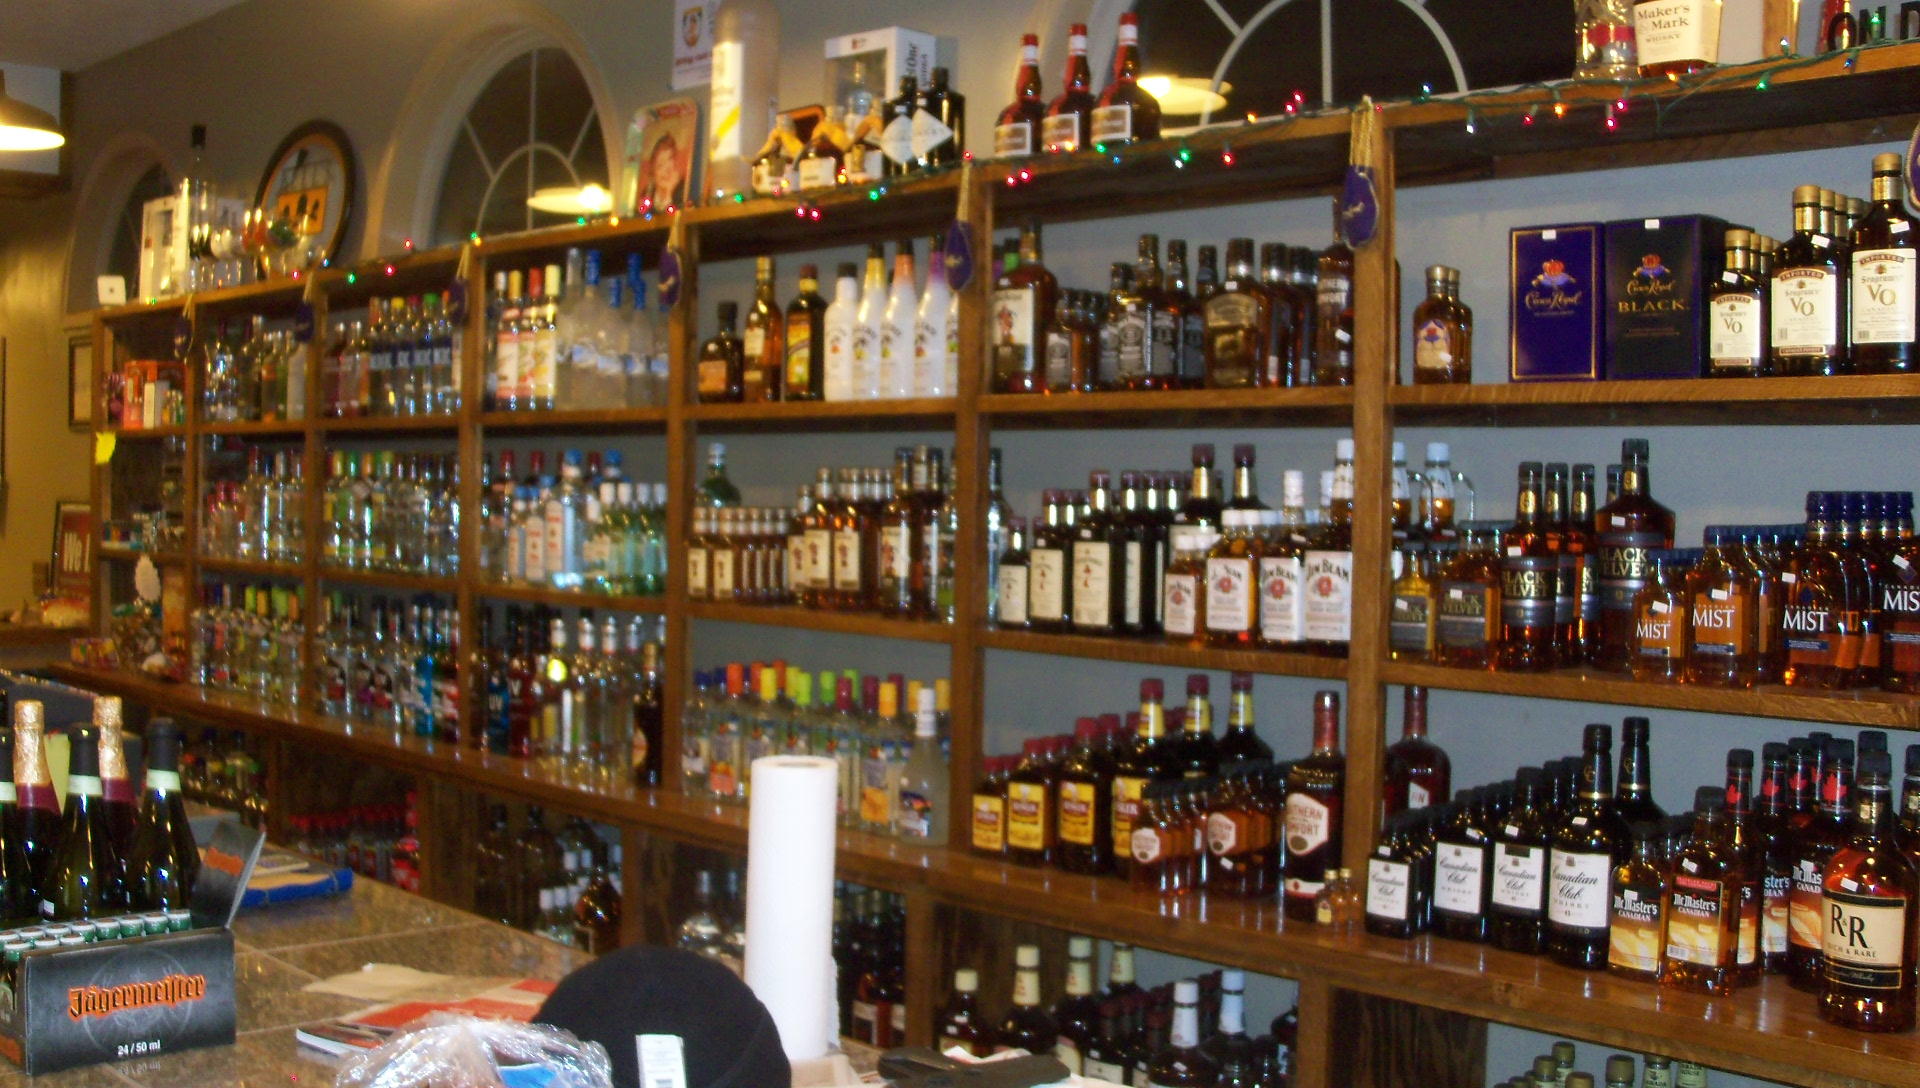 The liquor shelves